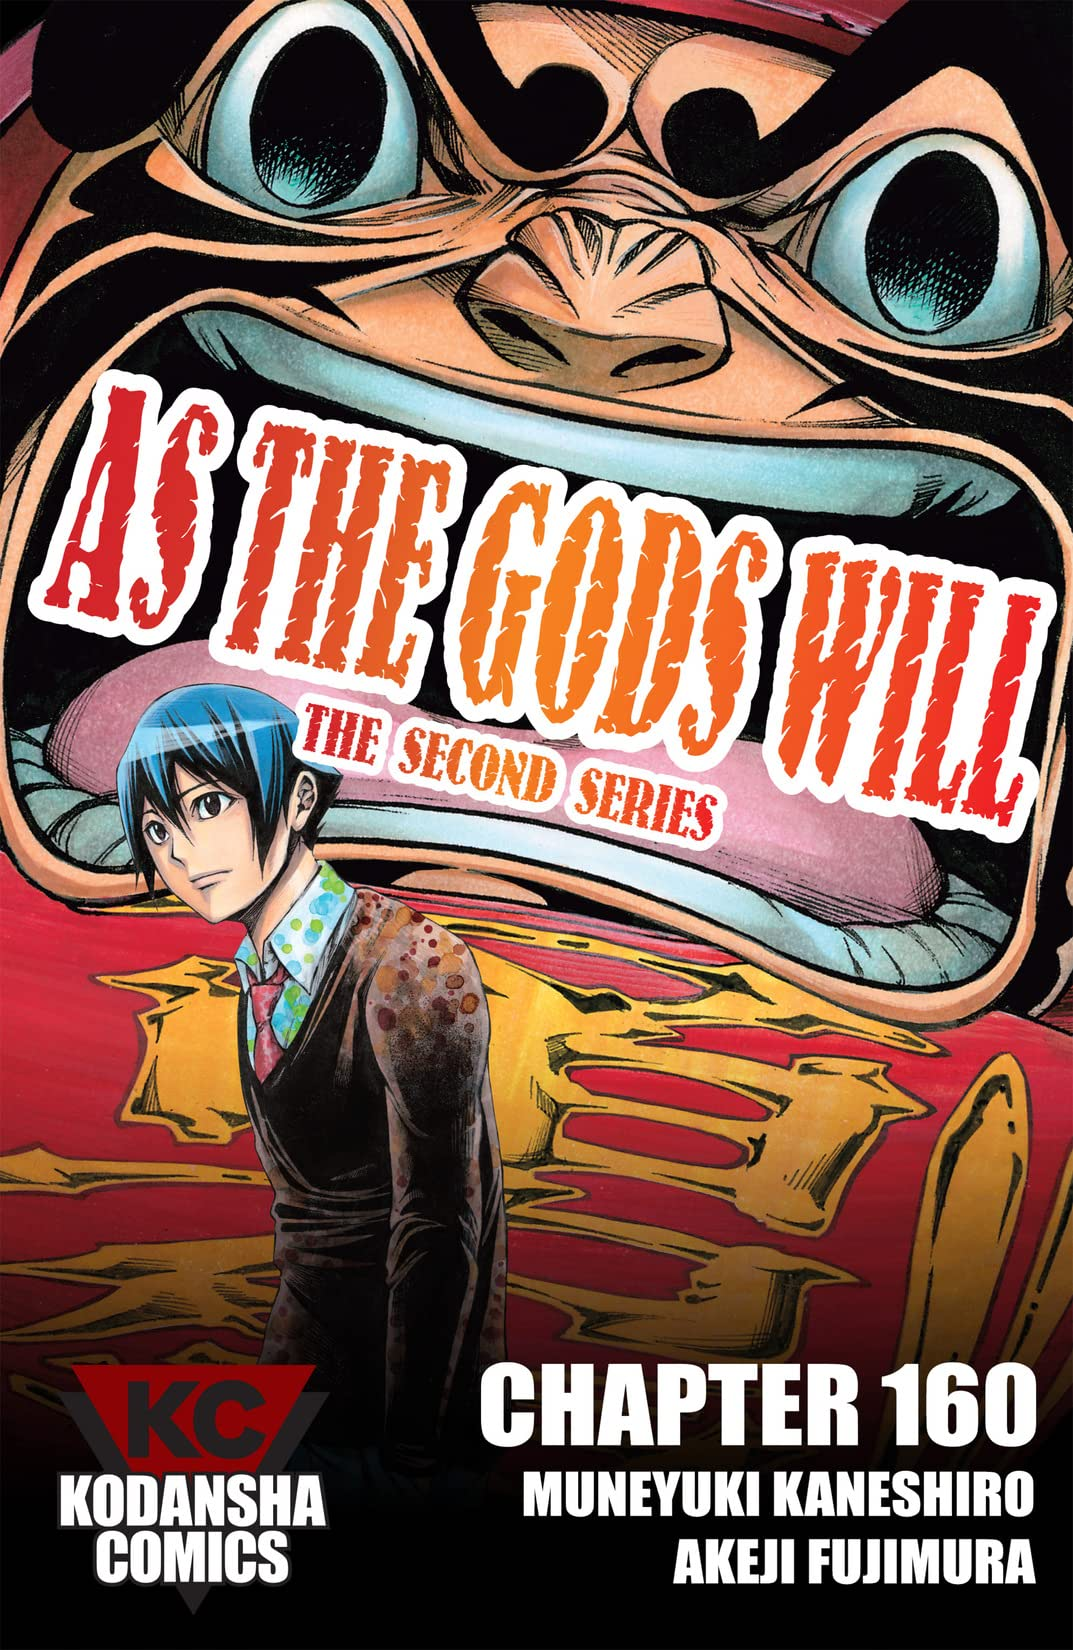 As The Gods Will: The Second Series #160